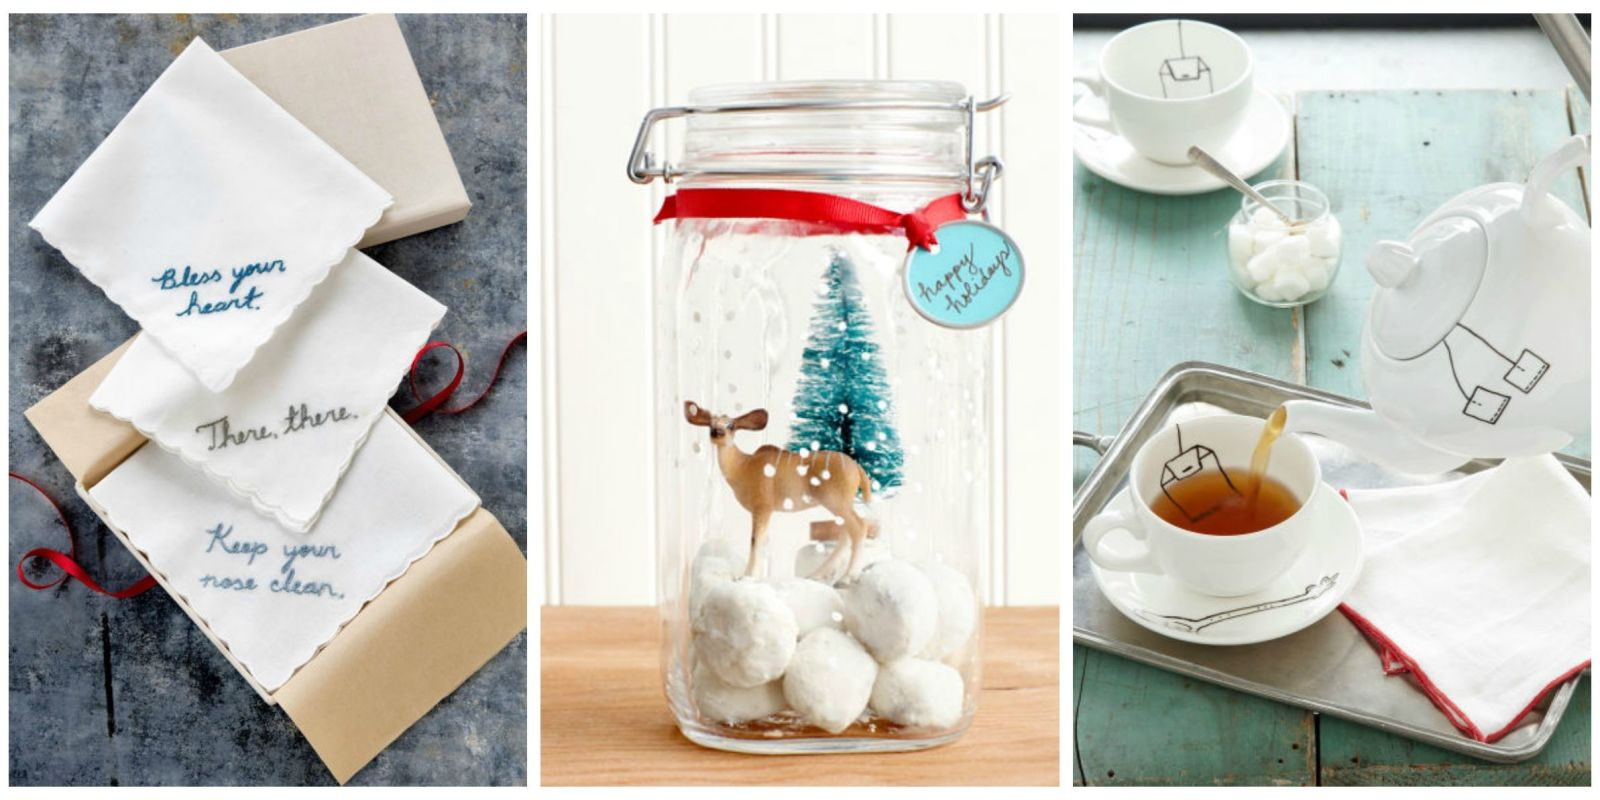 51 diy christmas gifts your friends and family will love